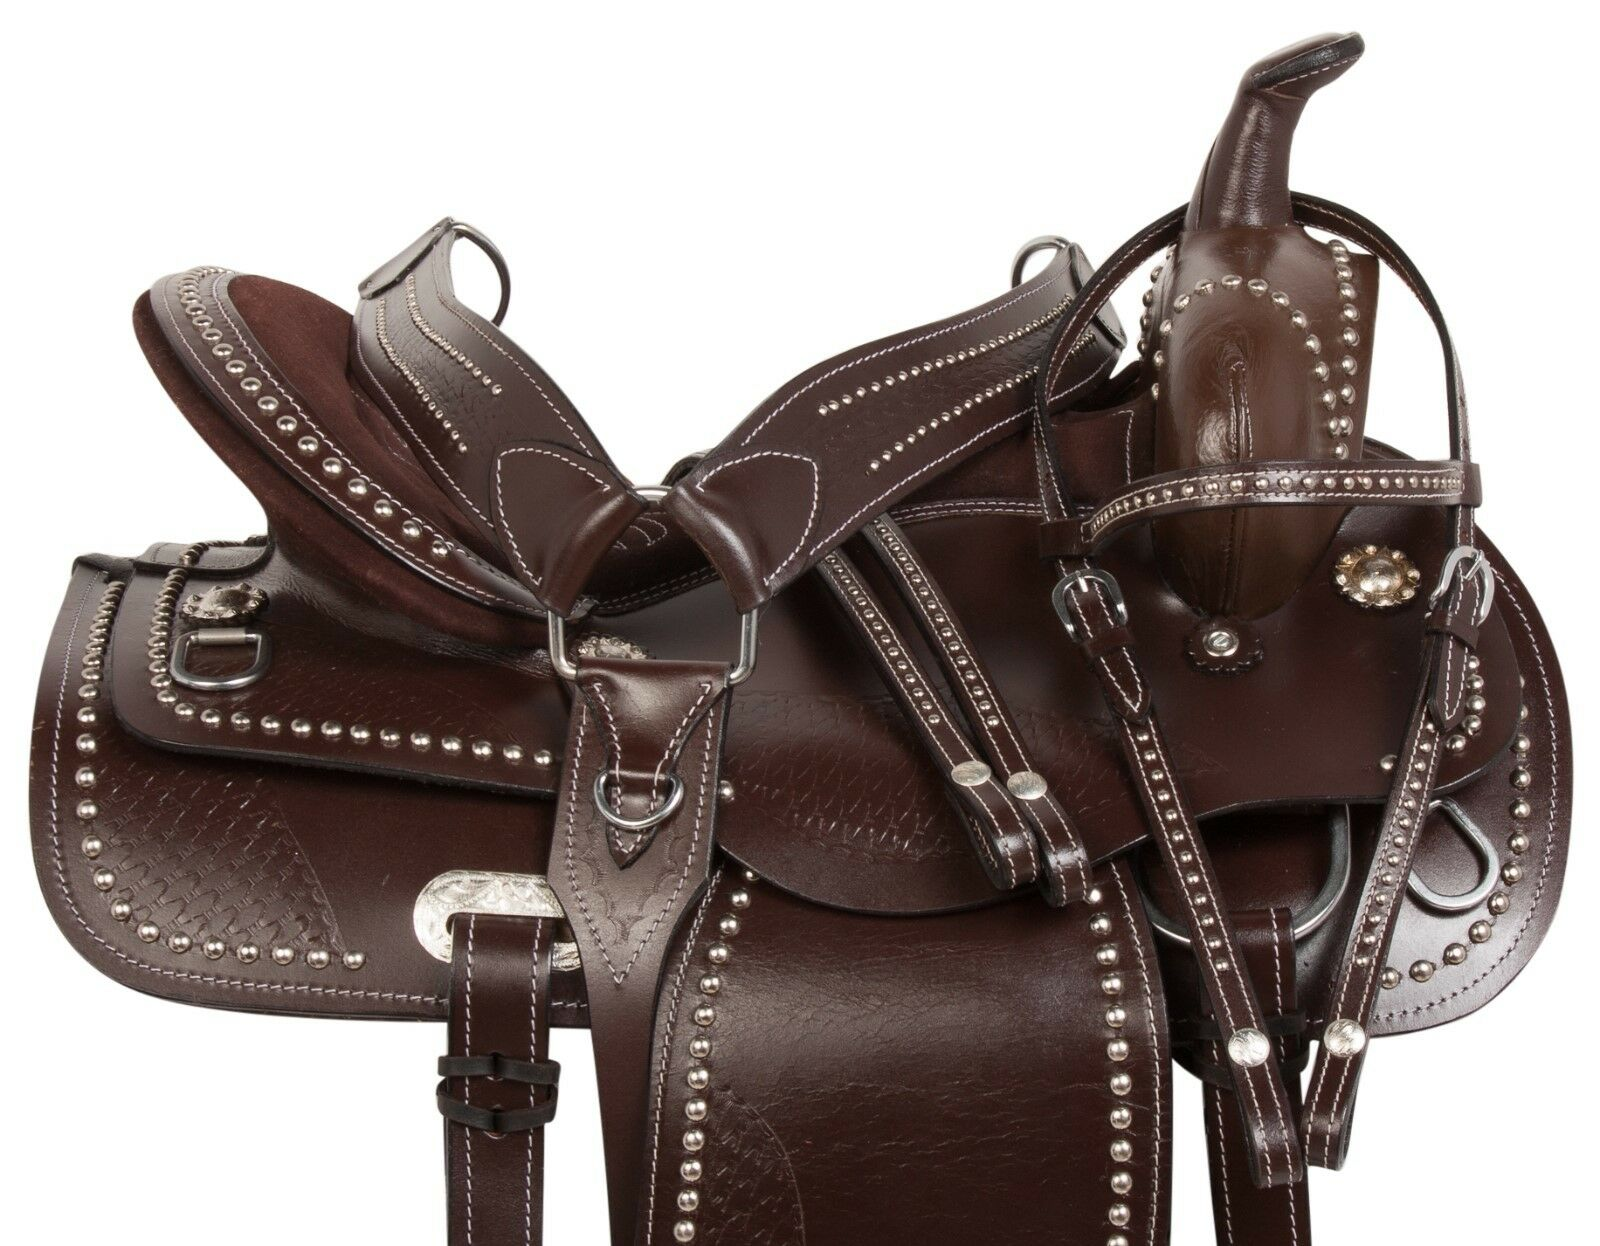 16 GAITED LIGHT WEIGHT COMFY WESTERN PLEASURE TRAIL HORSE LEATHER SADDLE